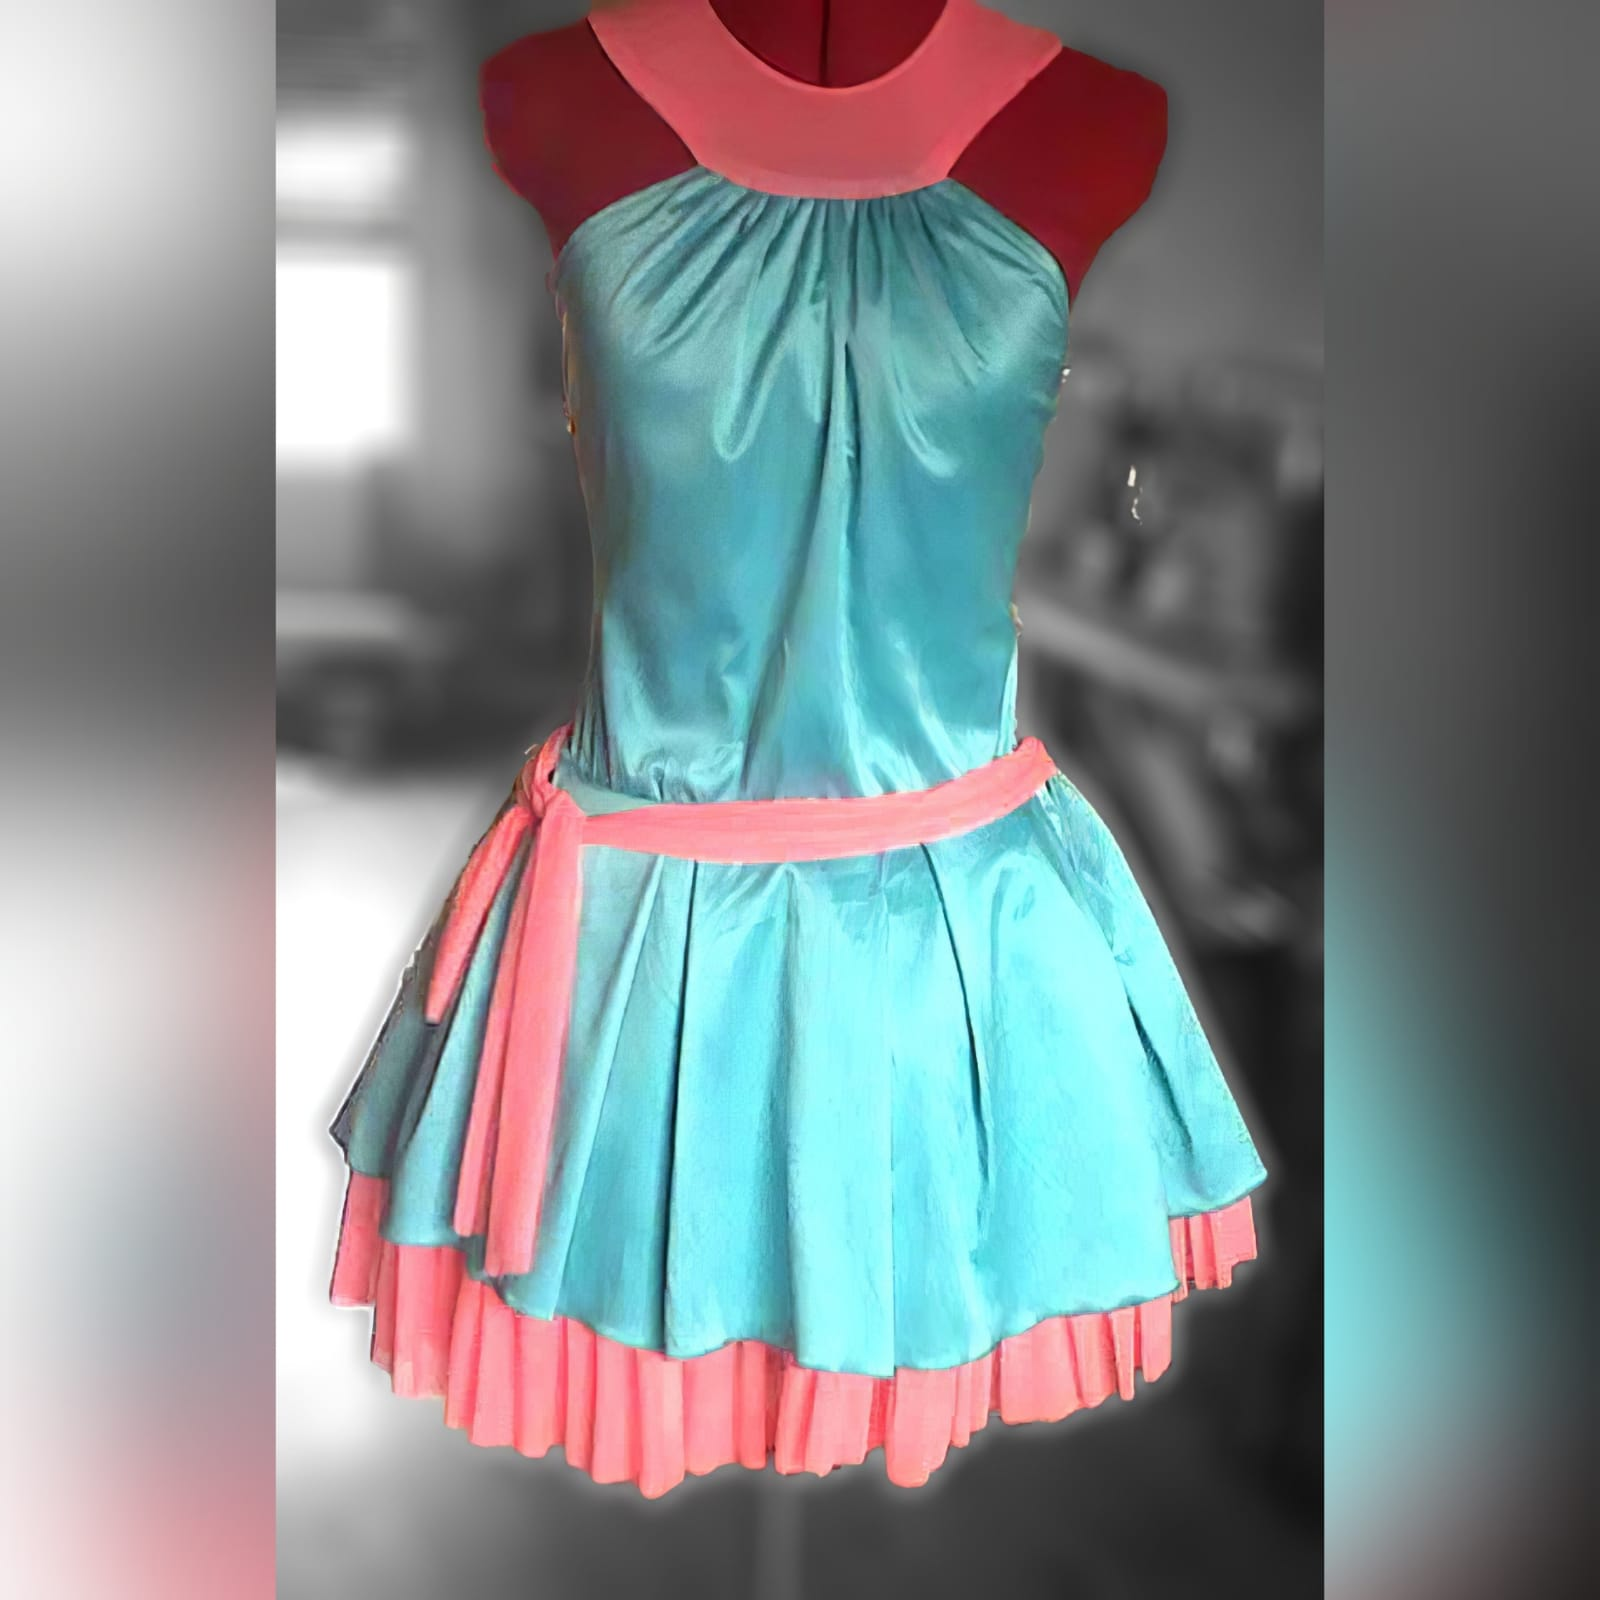 Mint green and coral short party dress 4 mint green and coral short party dress, with a gathered neckline, pleated bottom part with a coral mesh frill, with a diamond open back and a tie-up belt.